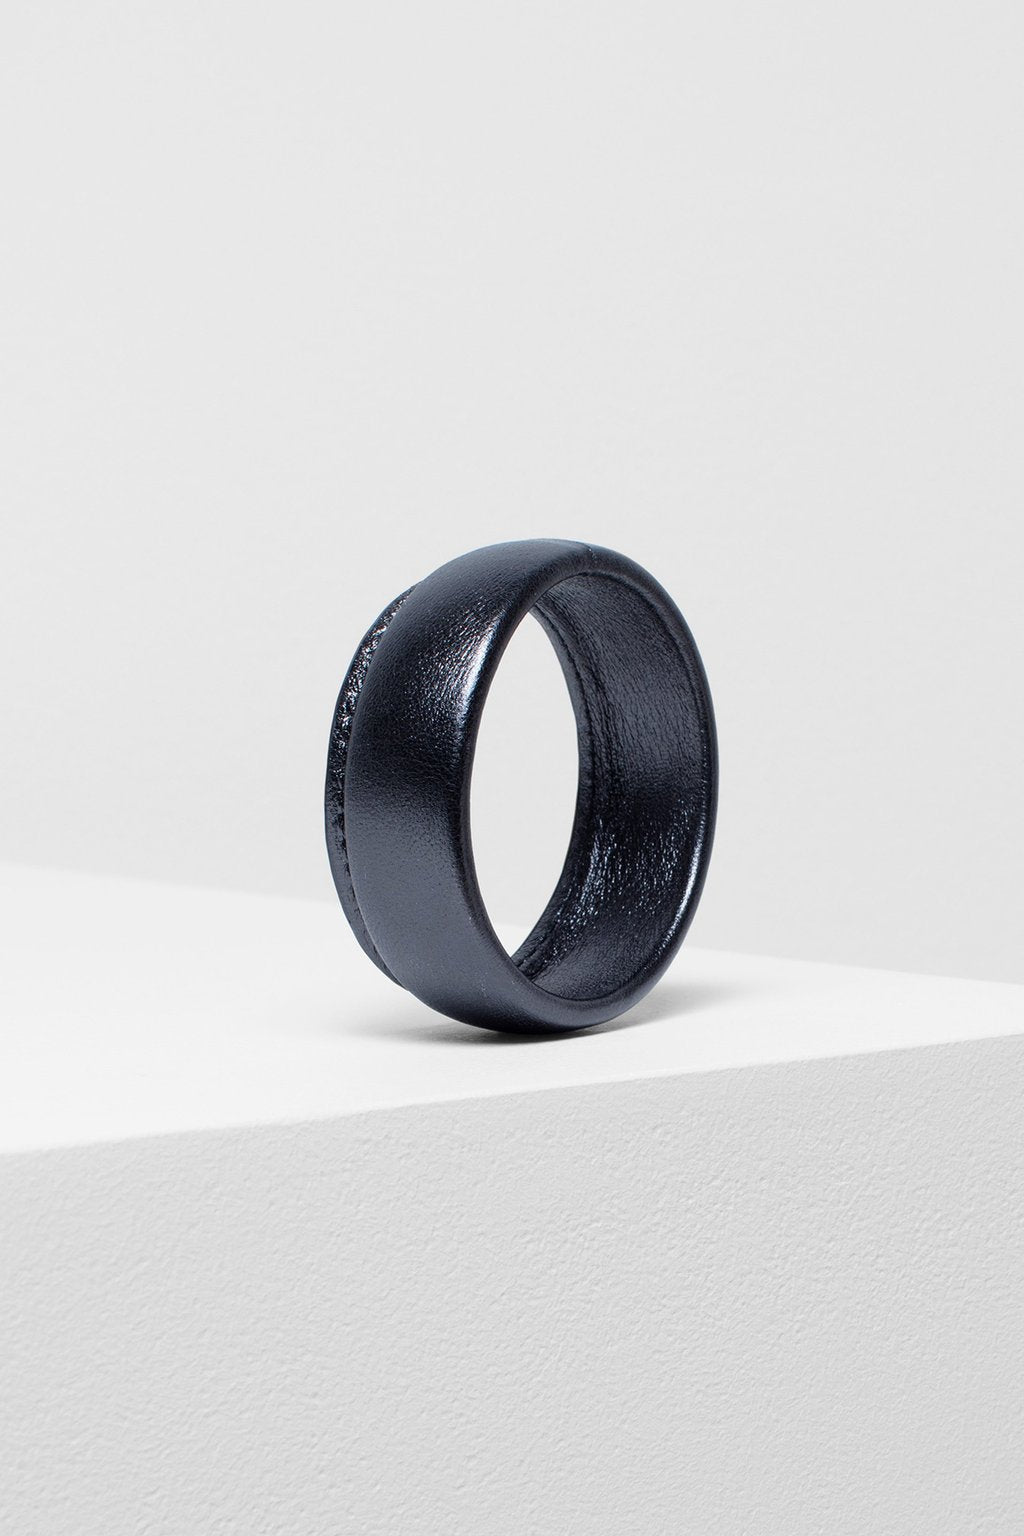 Elk Salla Bangle B0660 Gunmetal